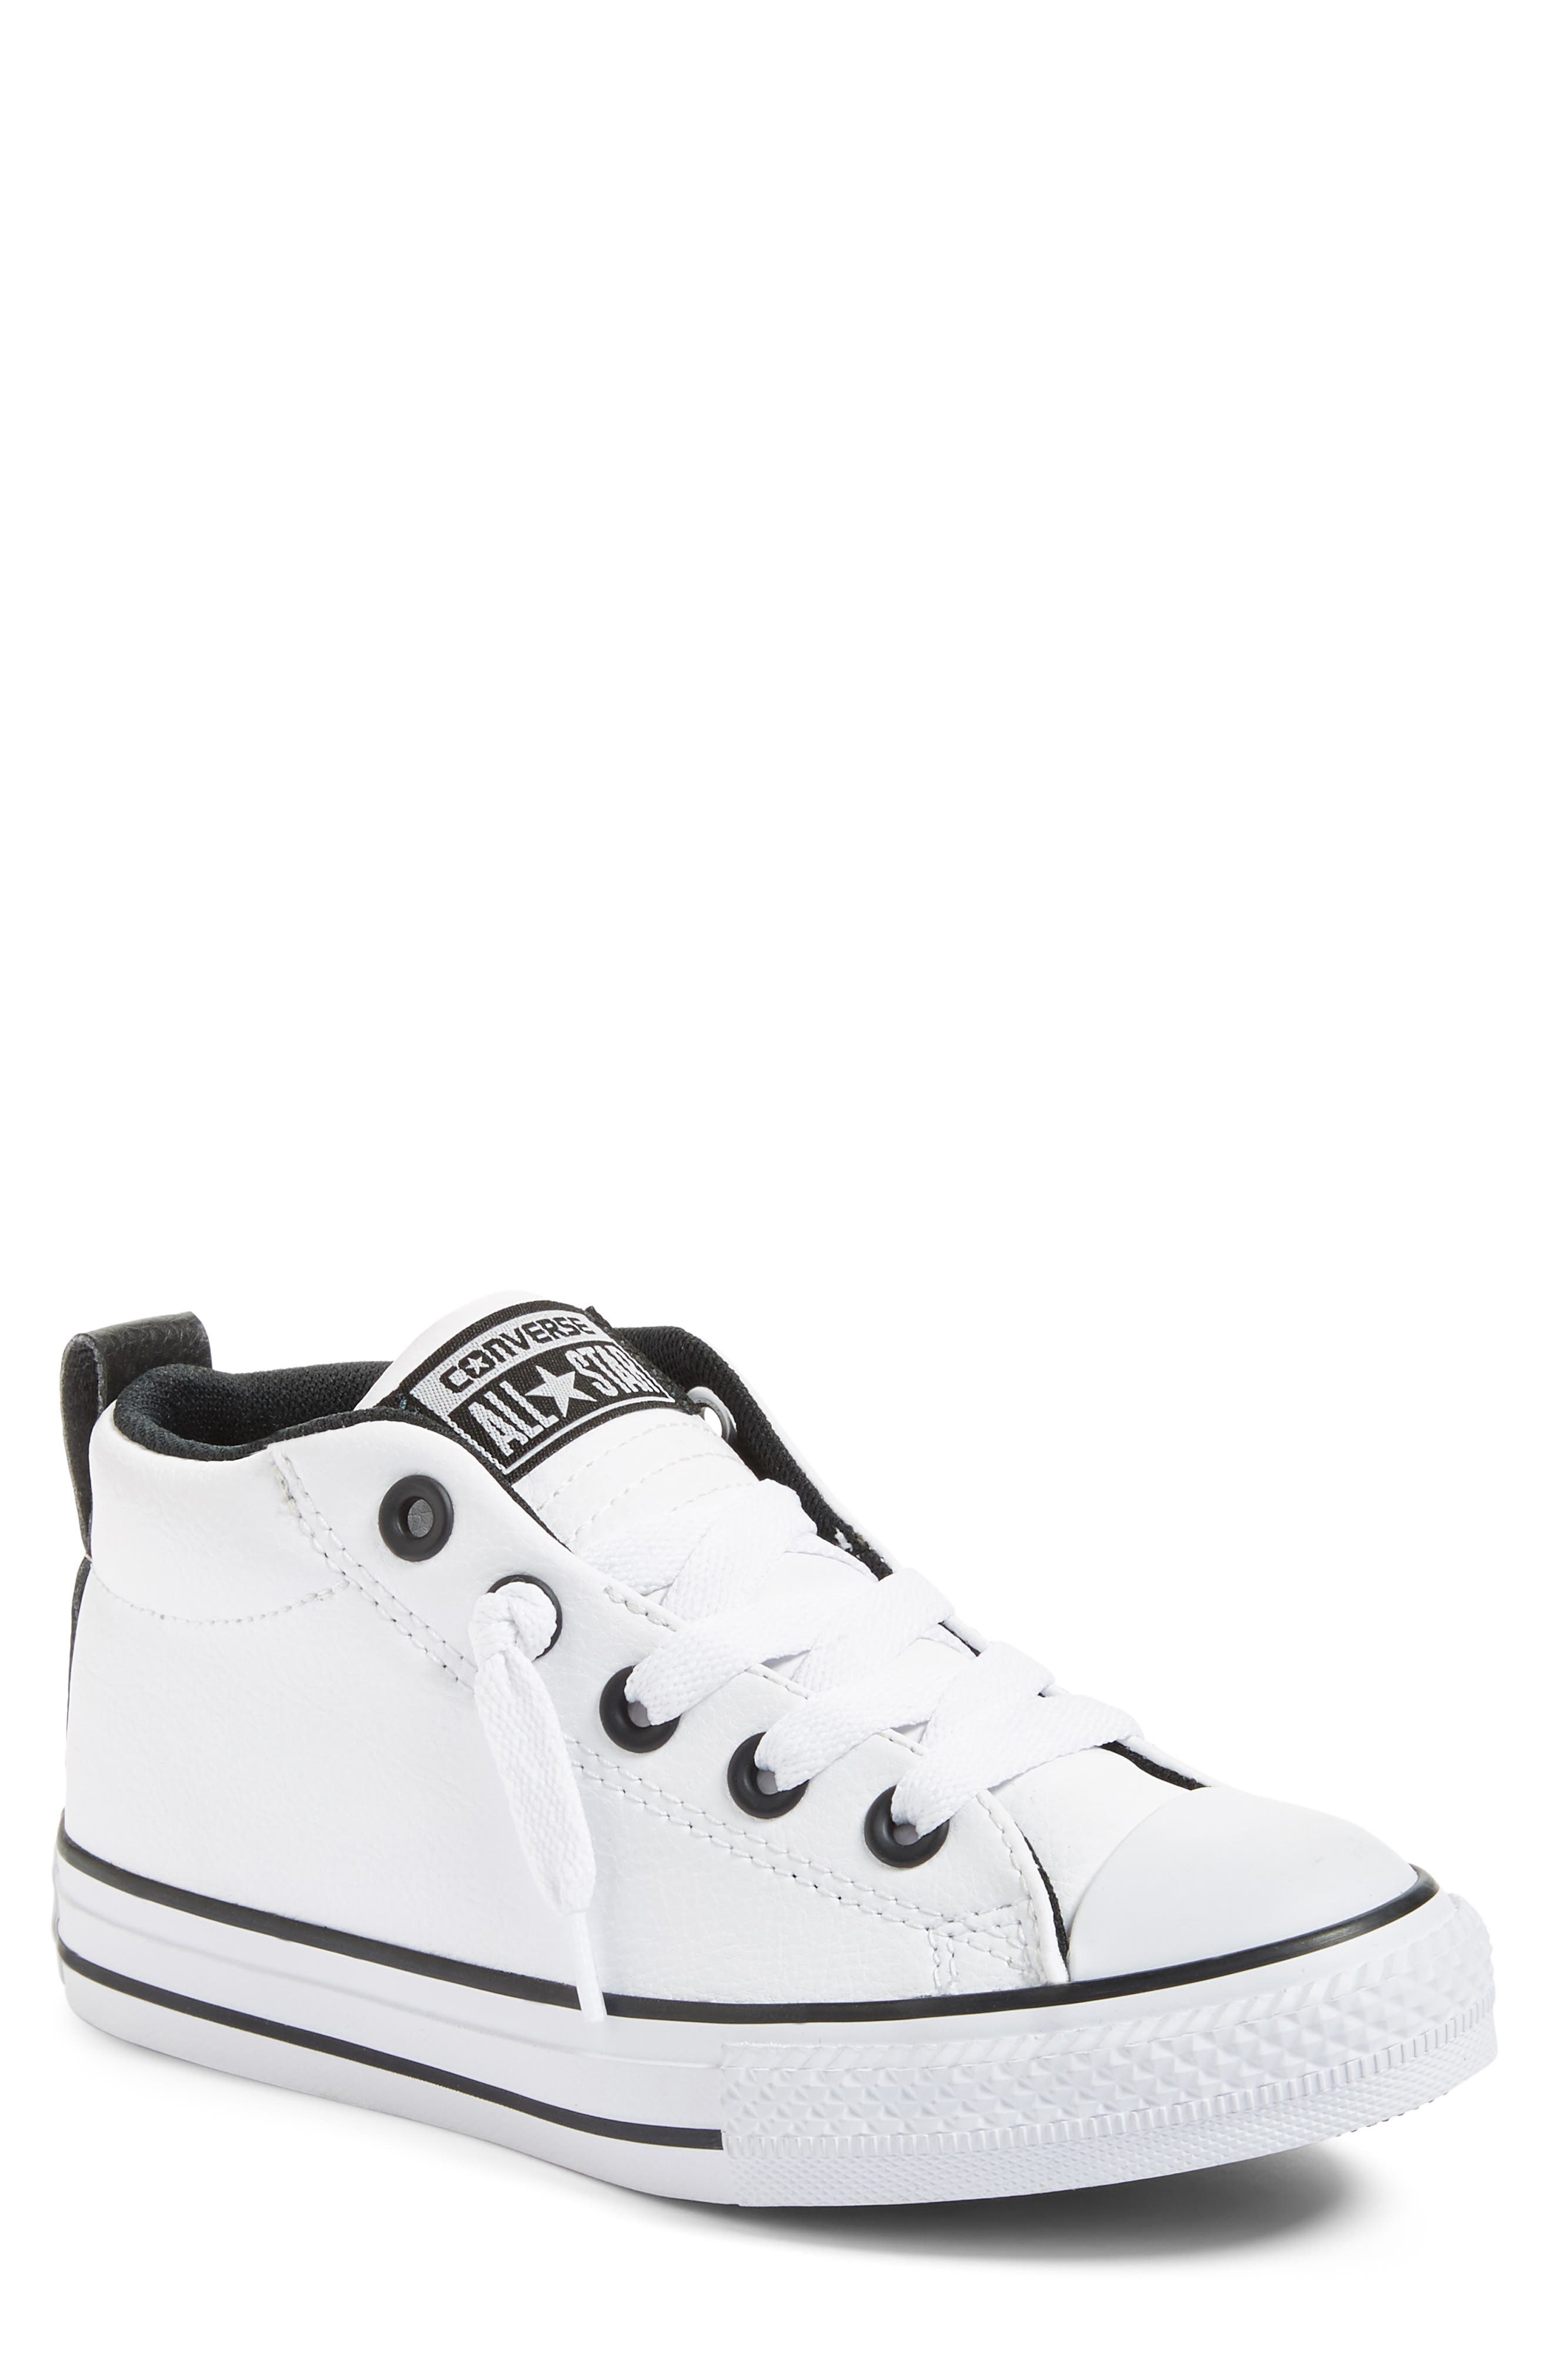 Chuck Taylor<sup>®</sup> All Star<sup>®</sup> Mid High Sneaker,                             Main thumbnail 1, color,                             102